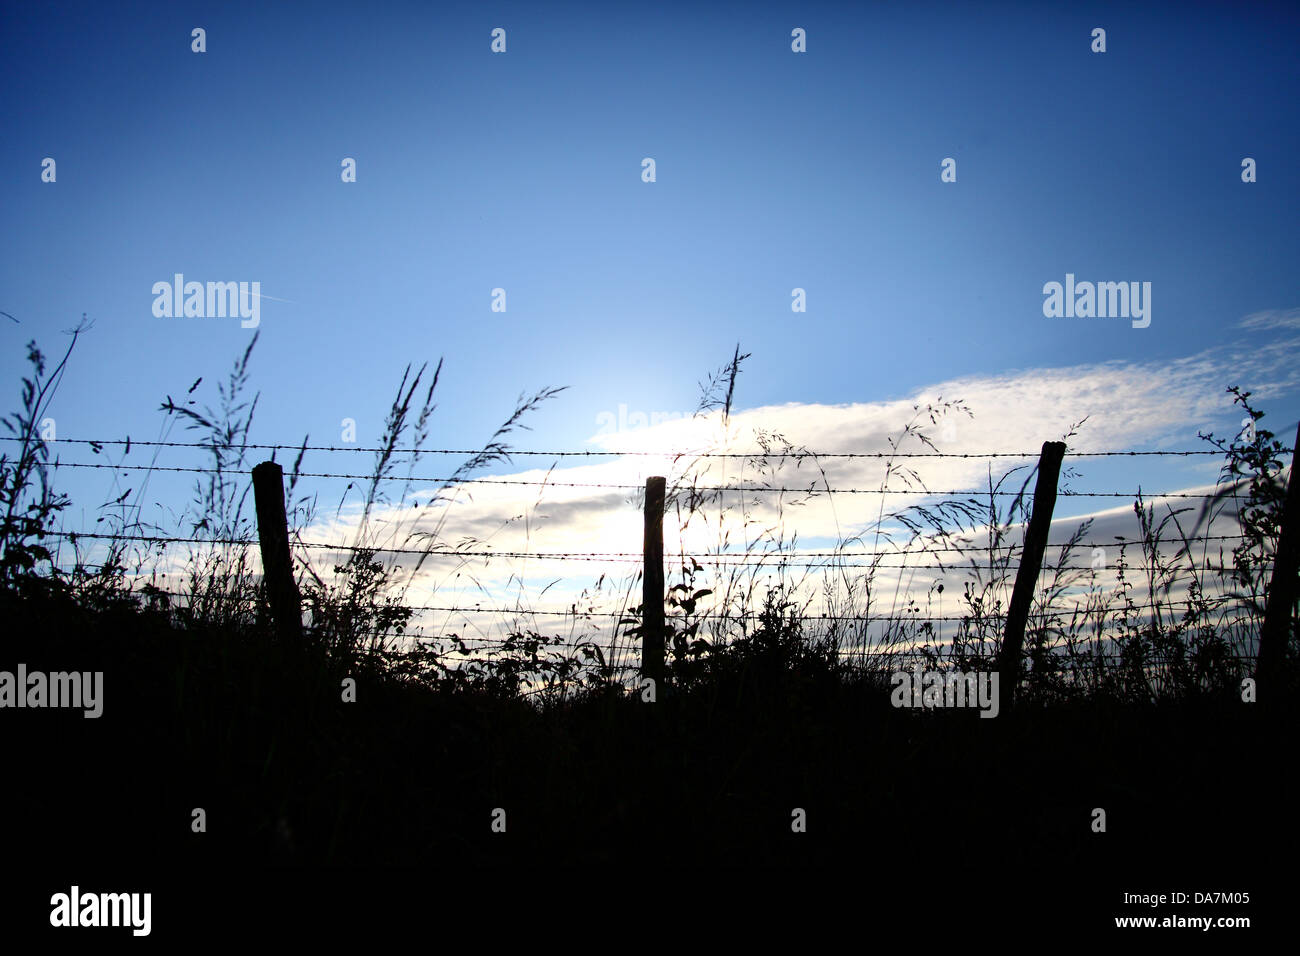 Barbed wire fence silhouetted against a blue sky and clouds - Stock Image